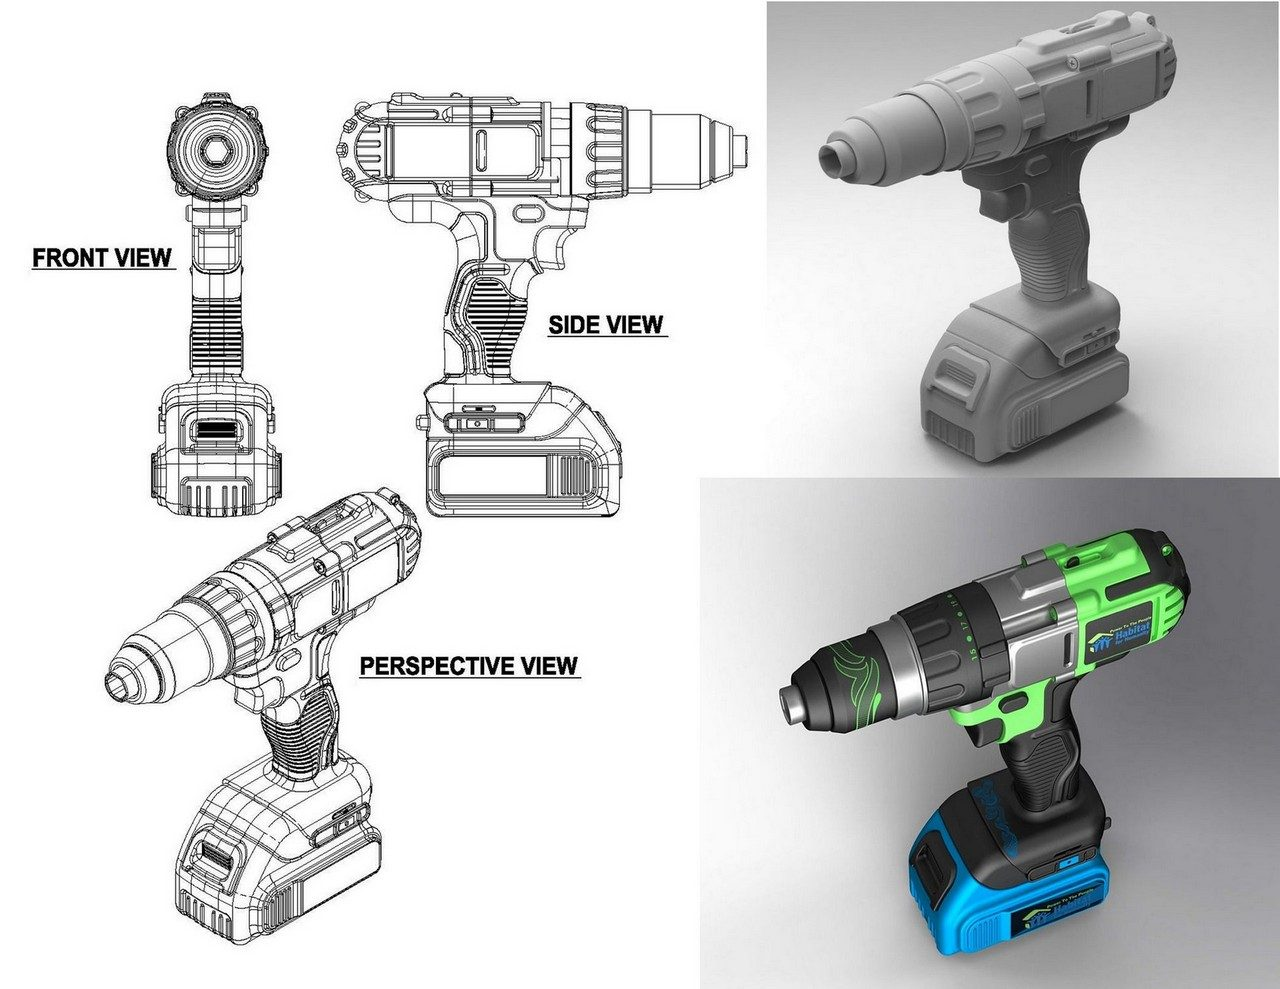 3D Product Illustrations Drawings